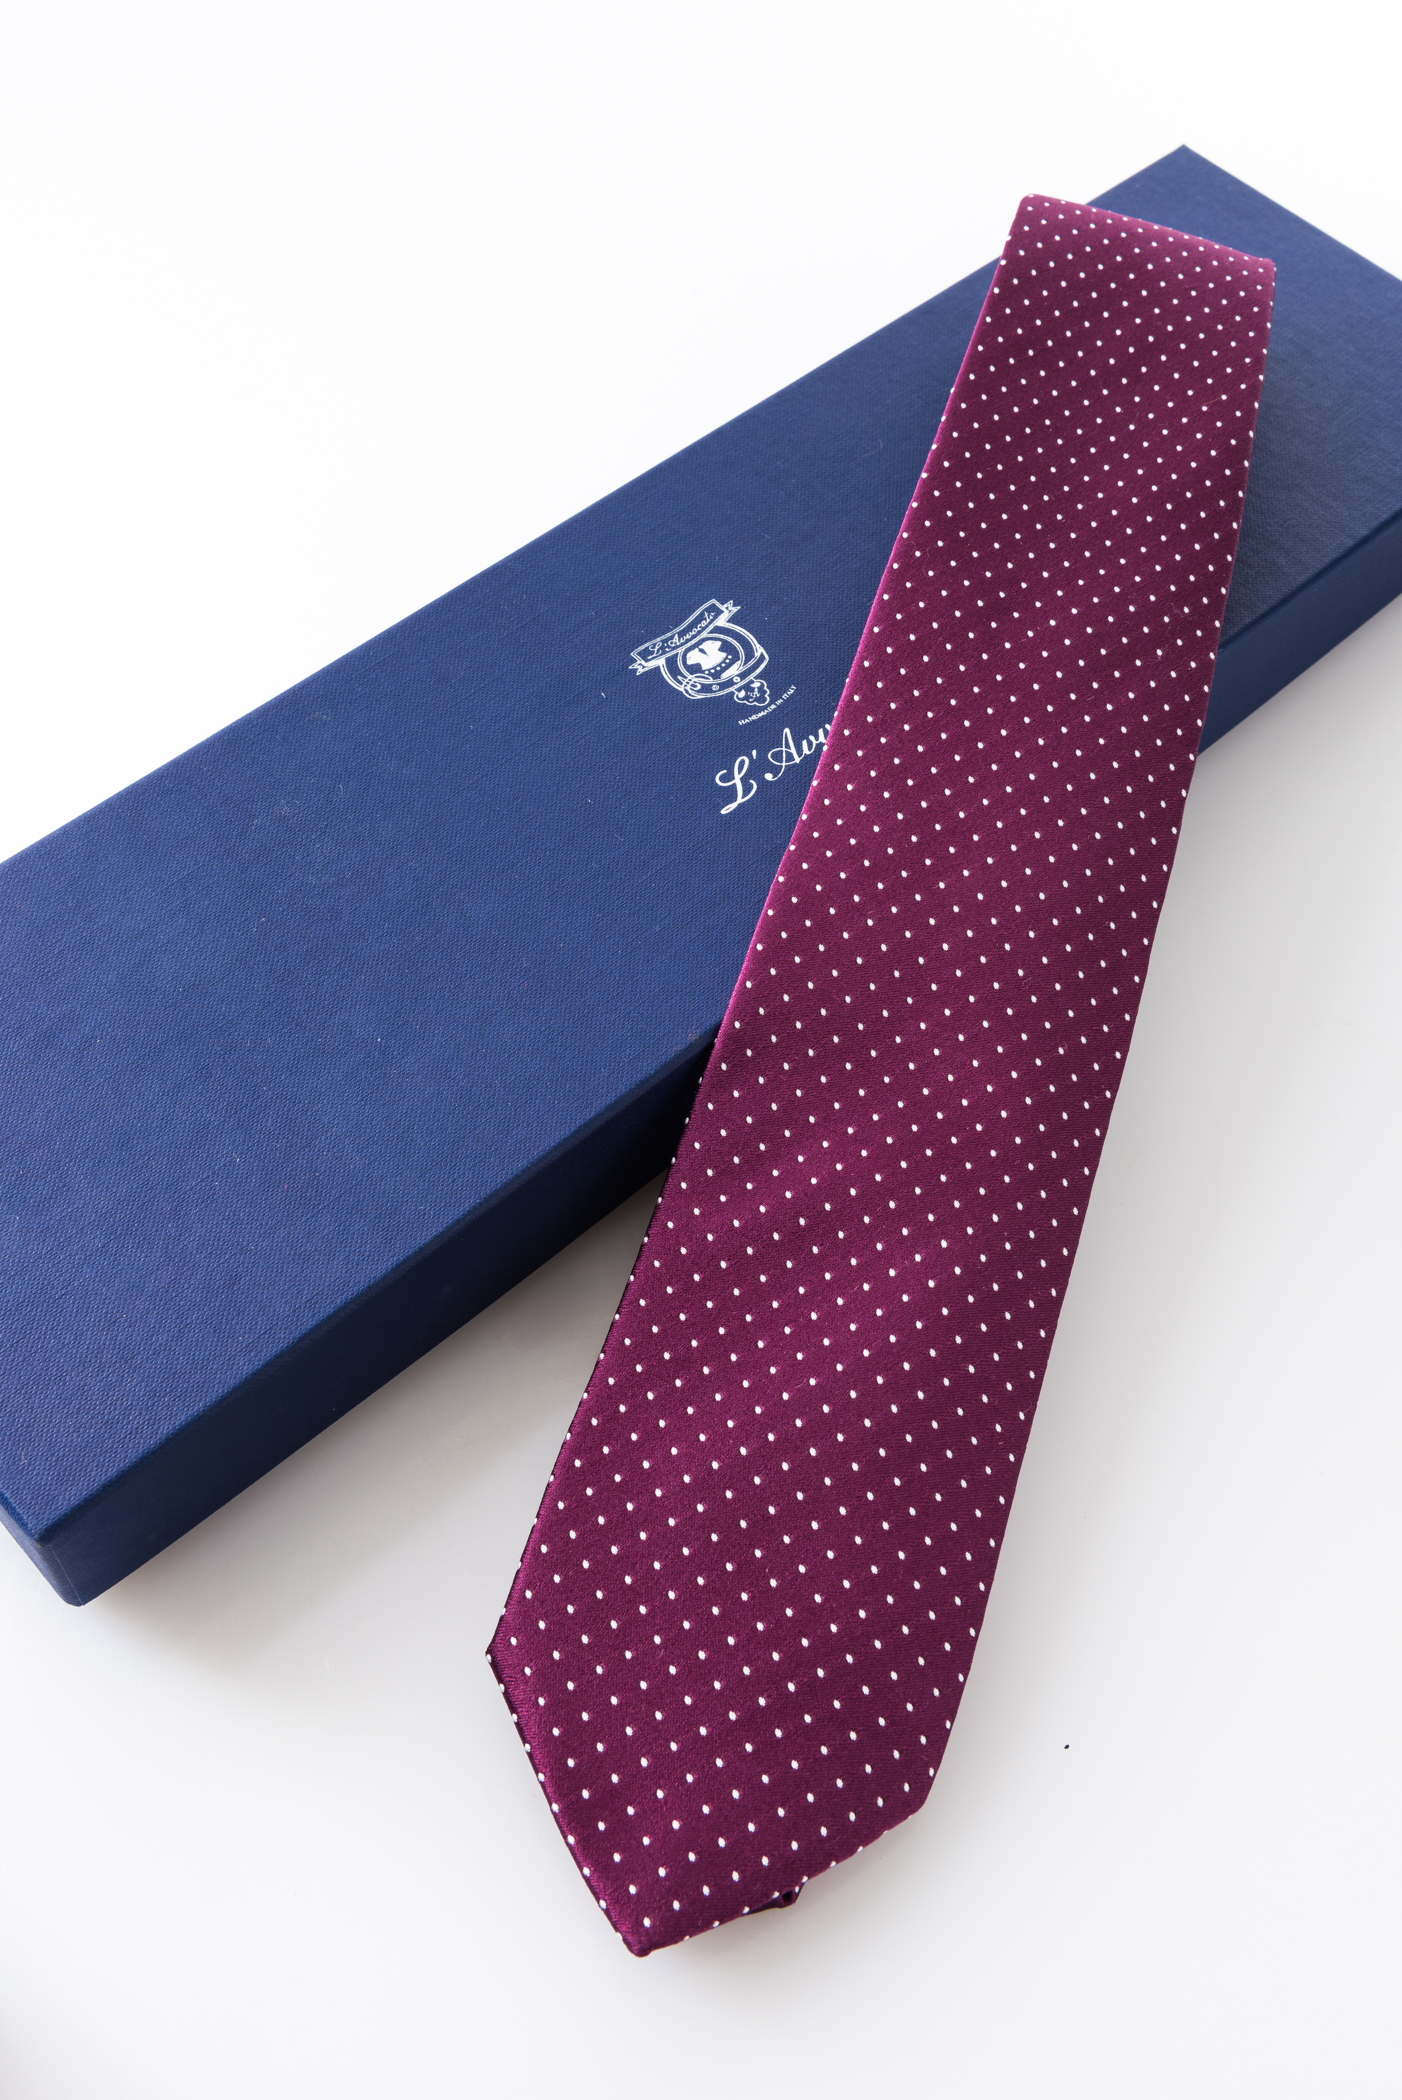 Lined Tie – Tassilo Prugna  – and its packaging